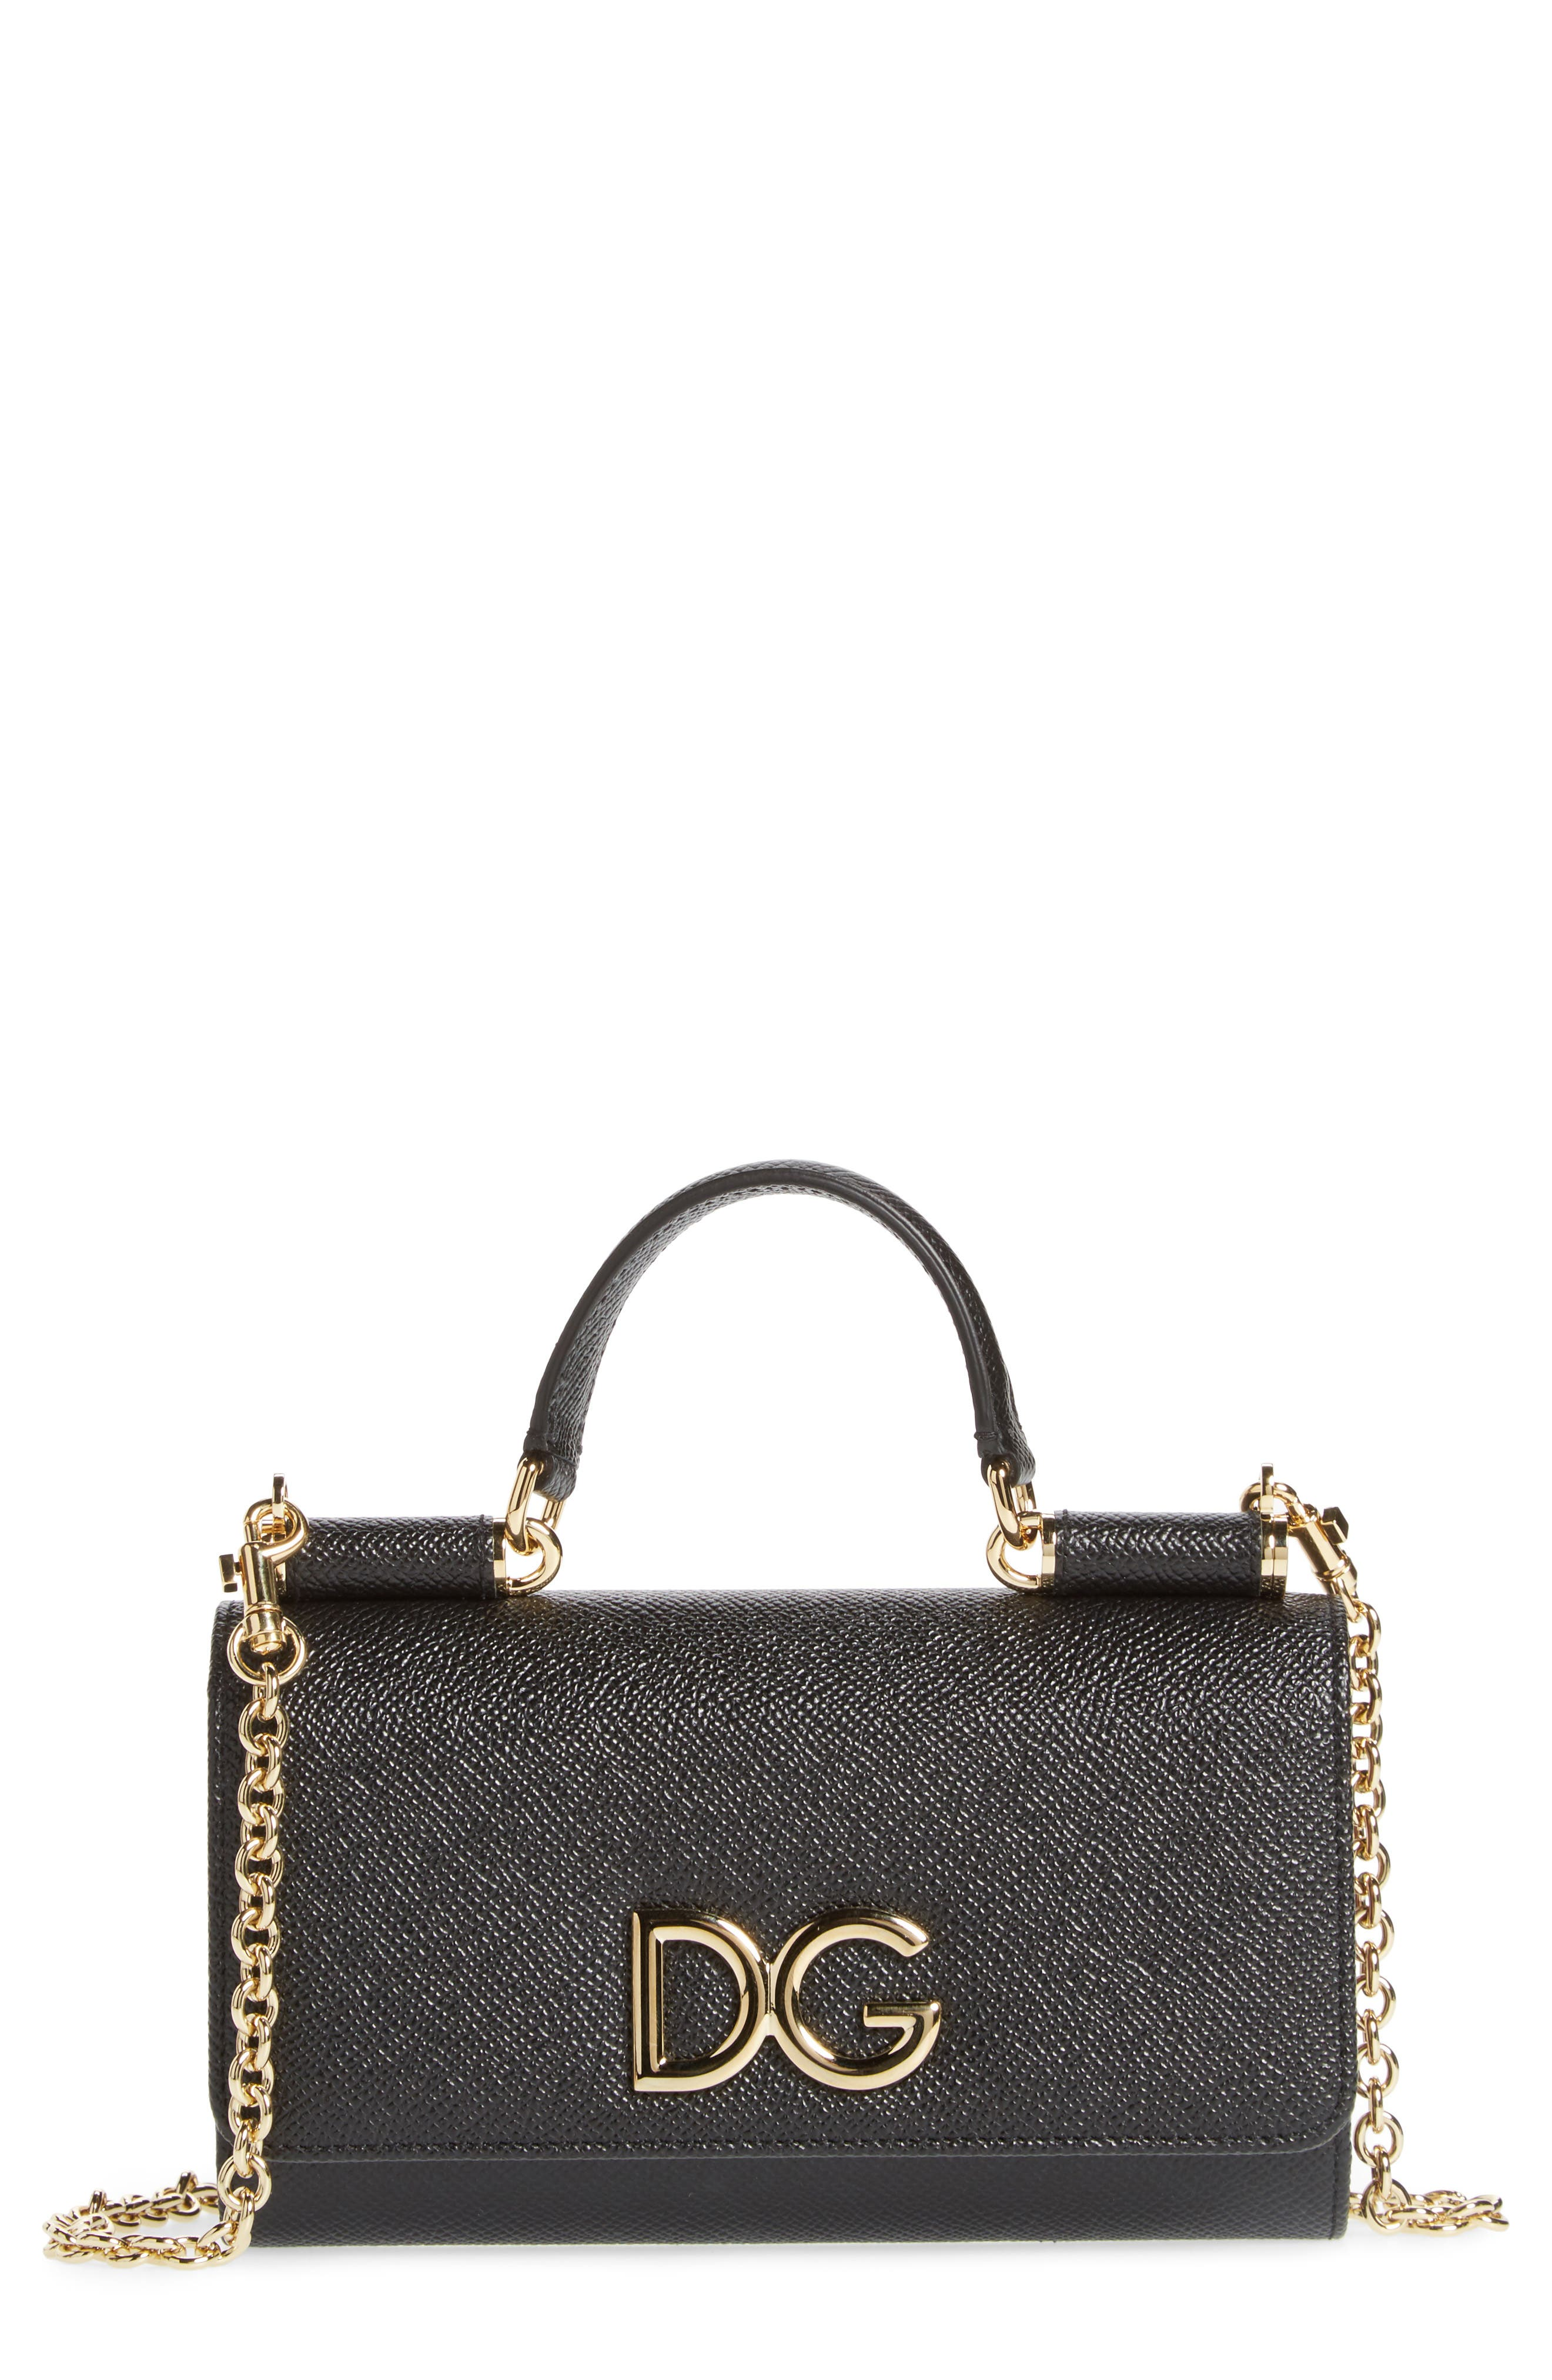 Alternate Image 1 Selected - Dolce&Gabanna Logo Phone Wallet on a Chain